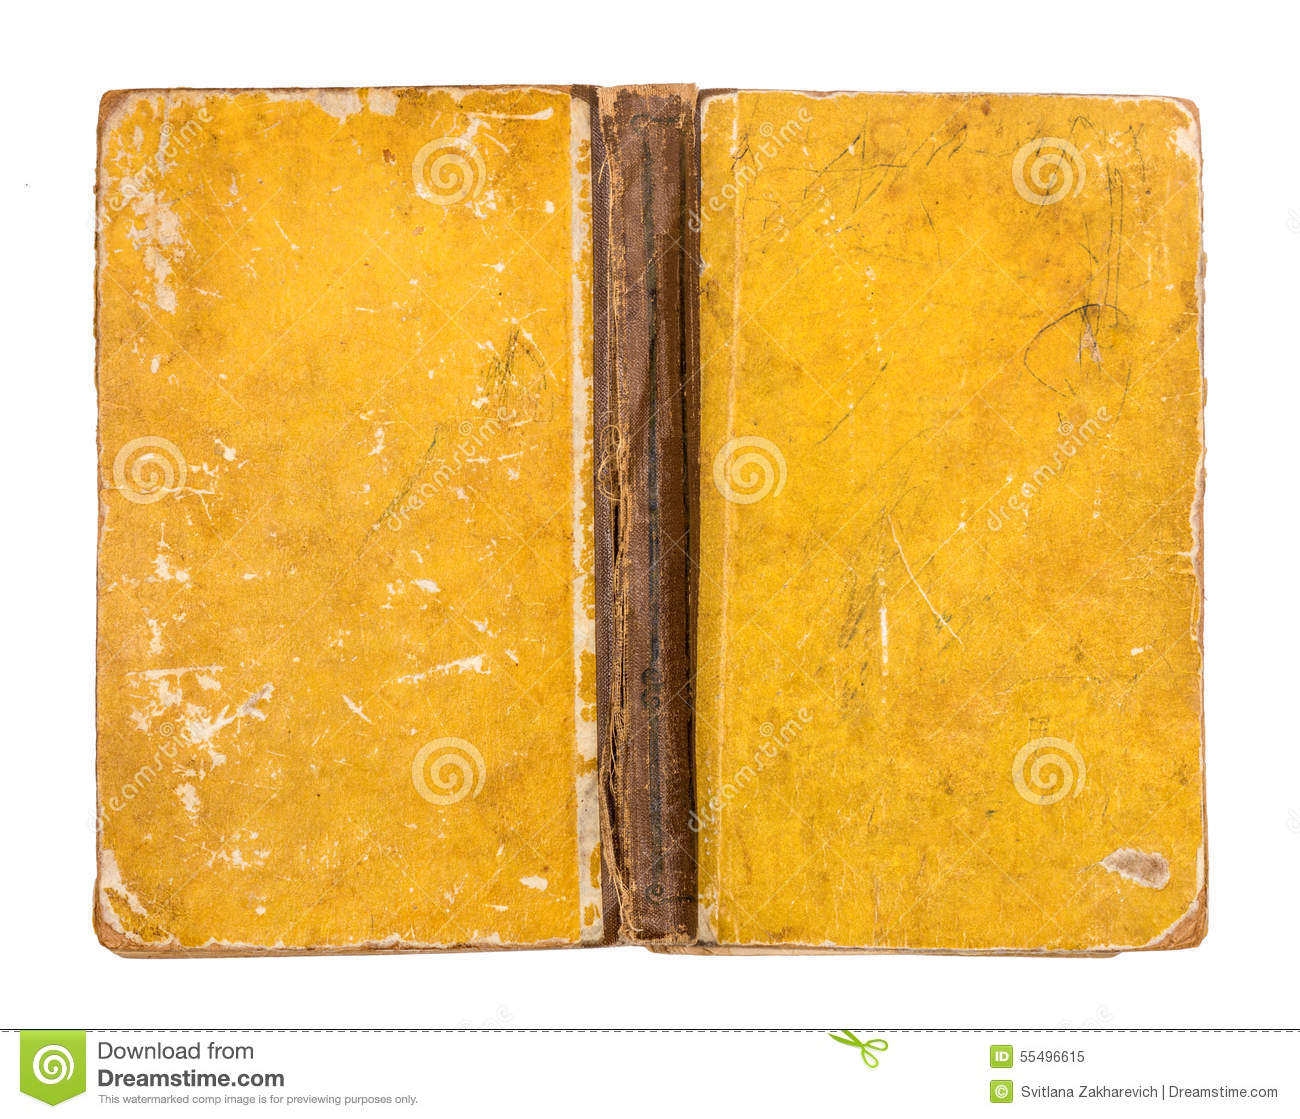 Book With Black And Yellow Cover : Vintage grungy yellow book cover stock image of